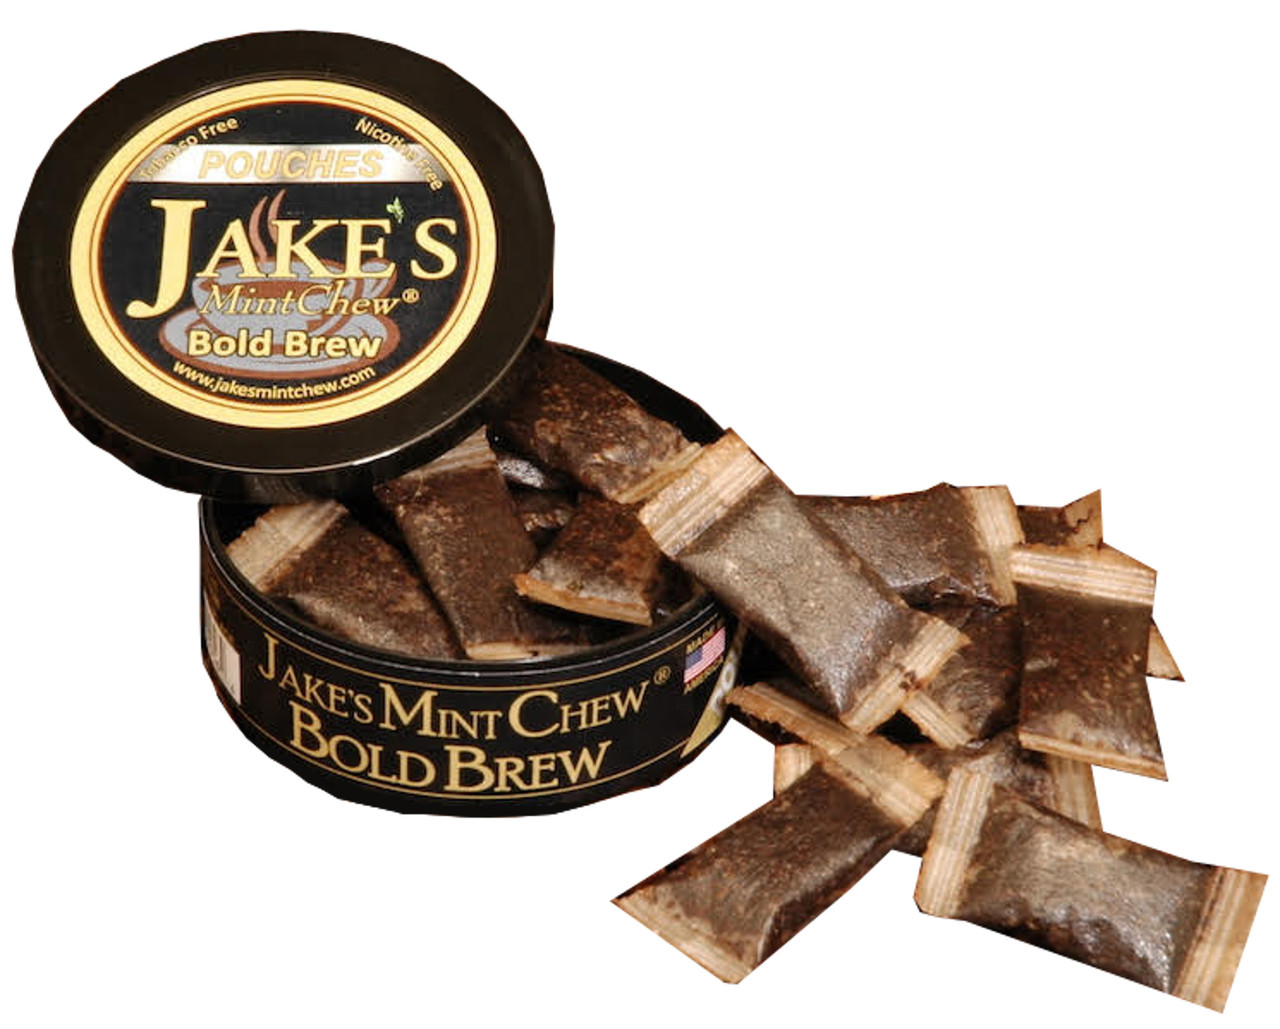 Jake's Mint Chew Pouches Bold Brew 1 Can Open